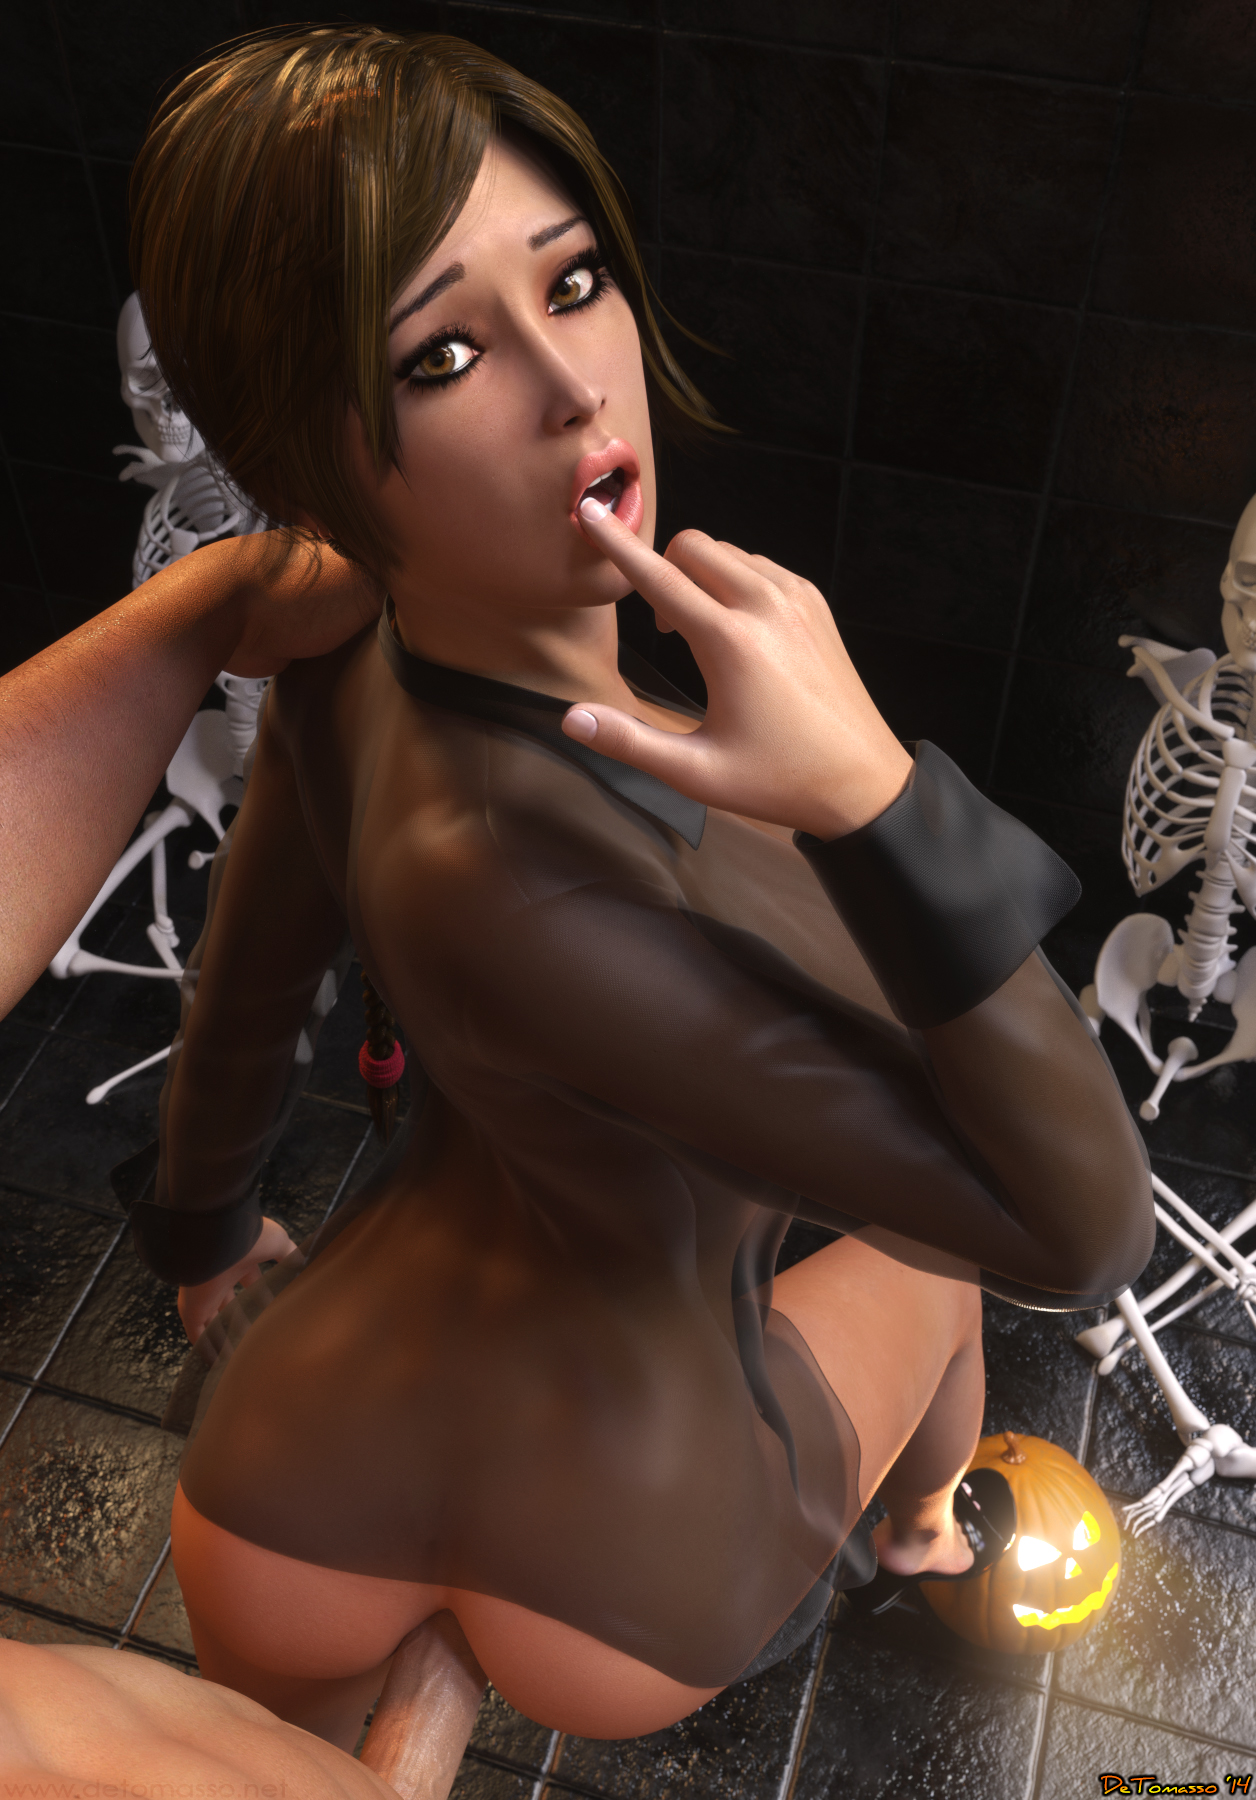 Tomb raider sex art xxx video